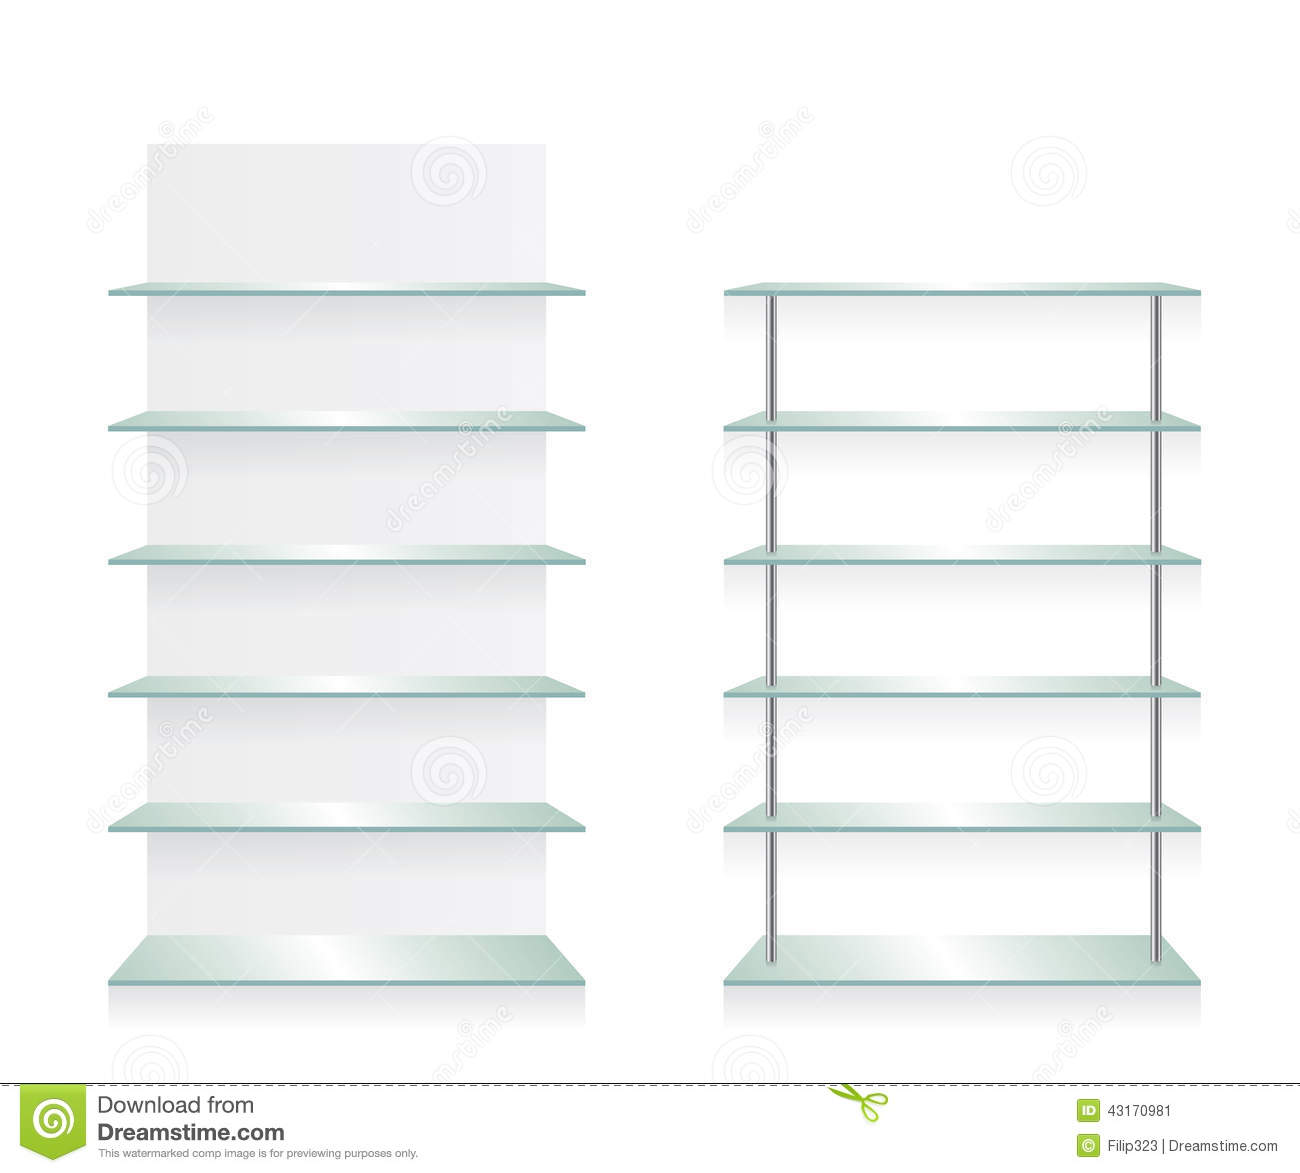 Empty Shop Glass Shelves Stock Vector - Image: 43170981